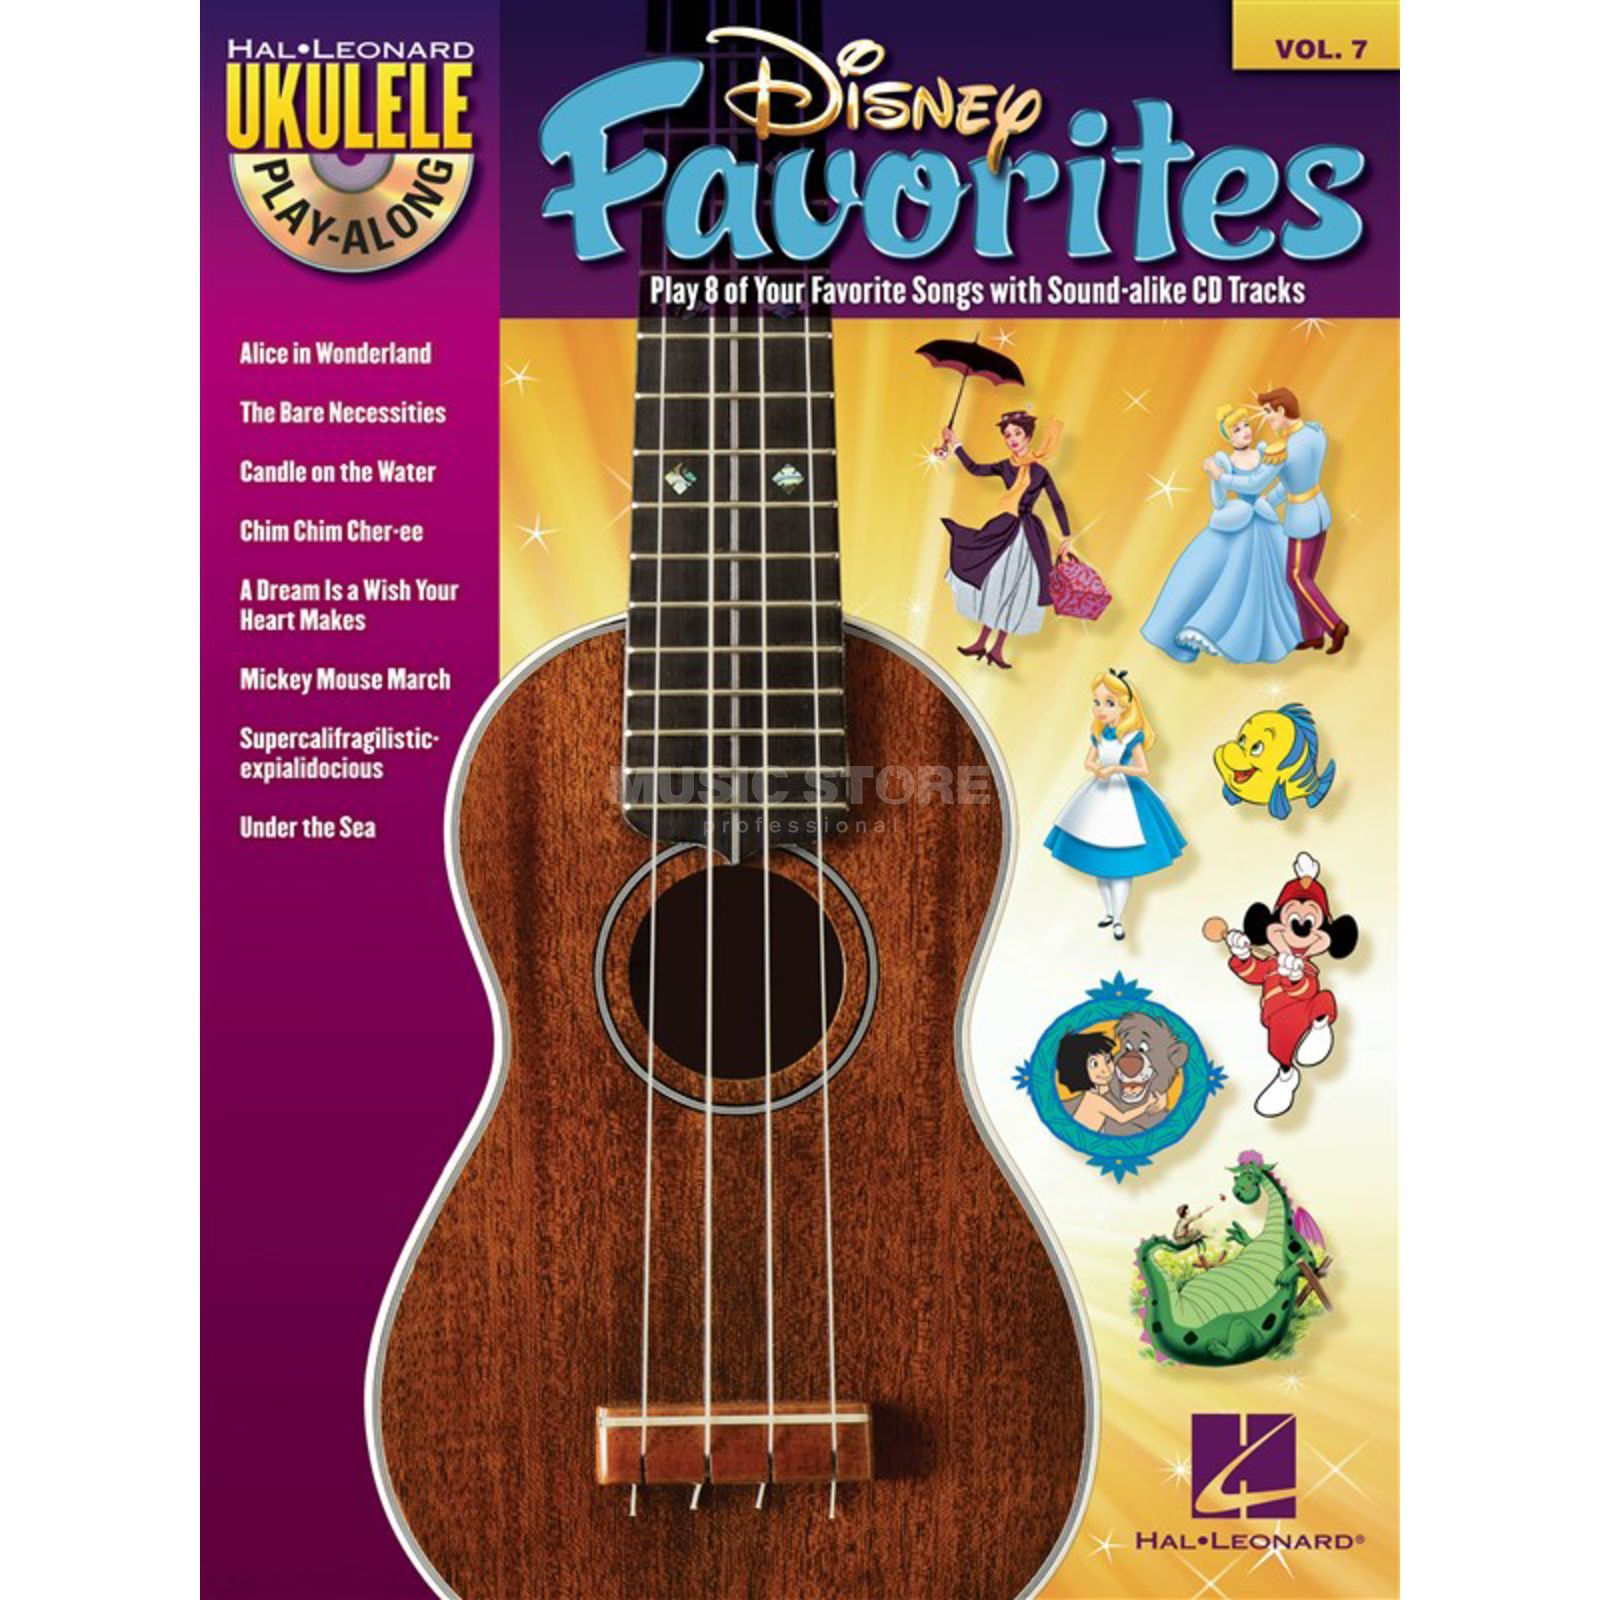 Hal Leonard Ukulele Play-Along: Disney Vol. 7, Ukulele incl. CD Produktbillede